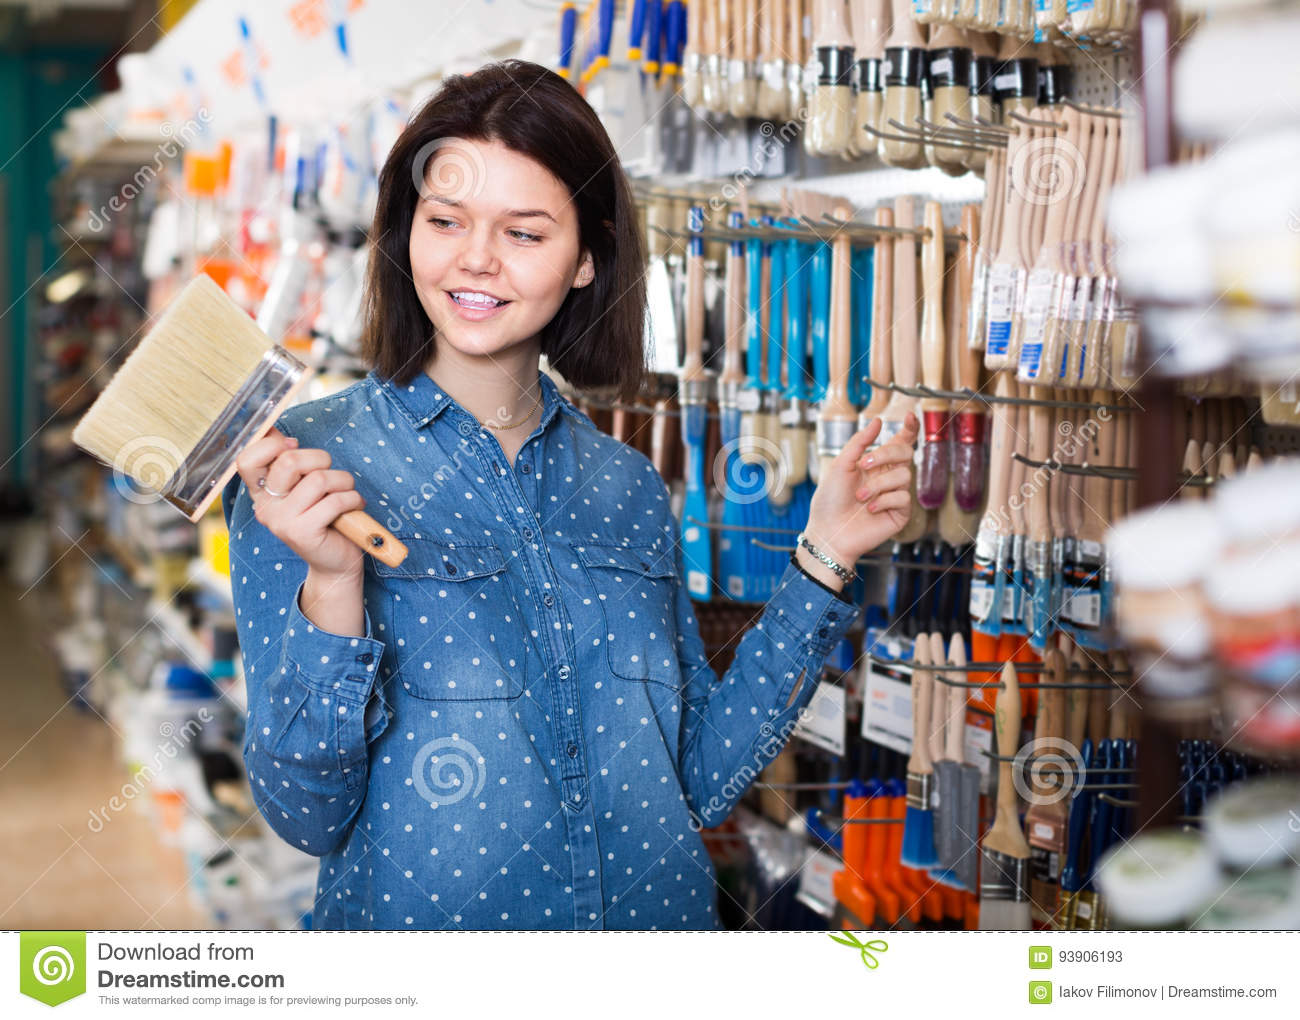 Smiling Girl Deciding On Brush For Decorating House In Paint